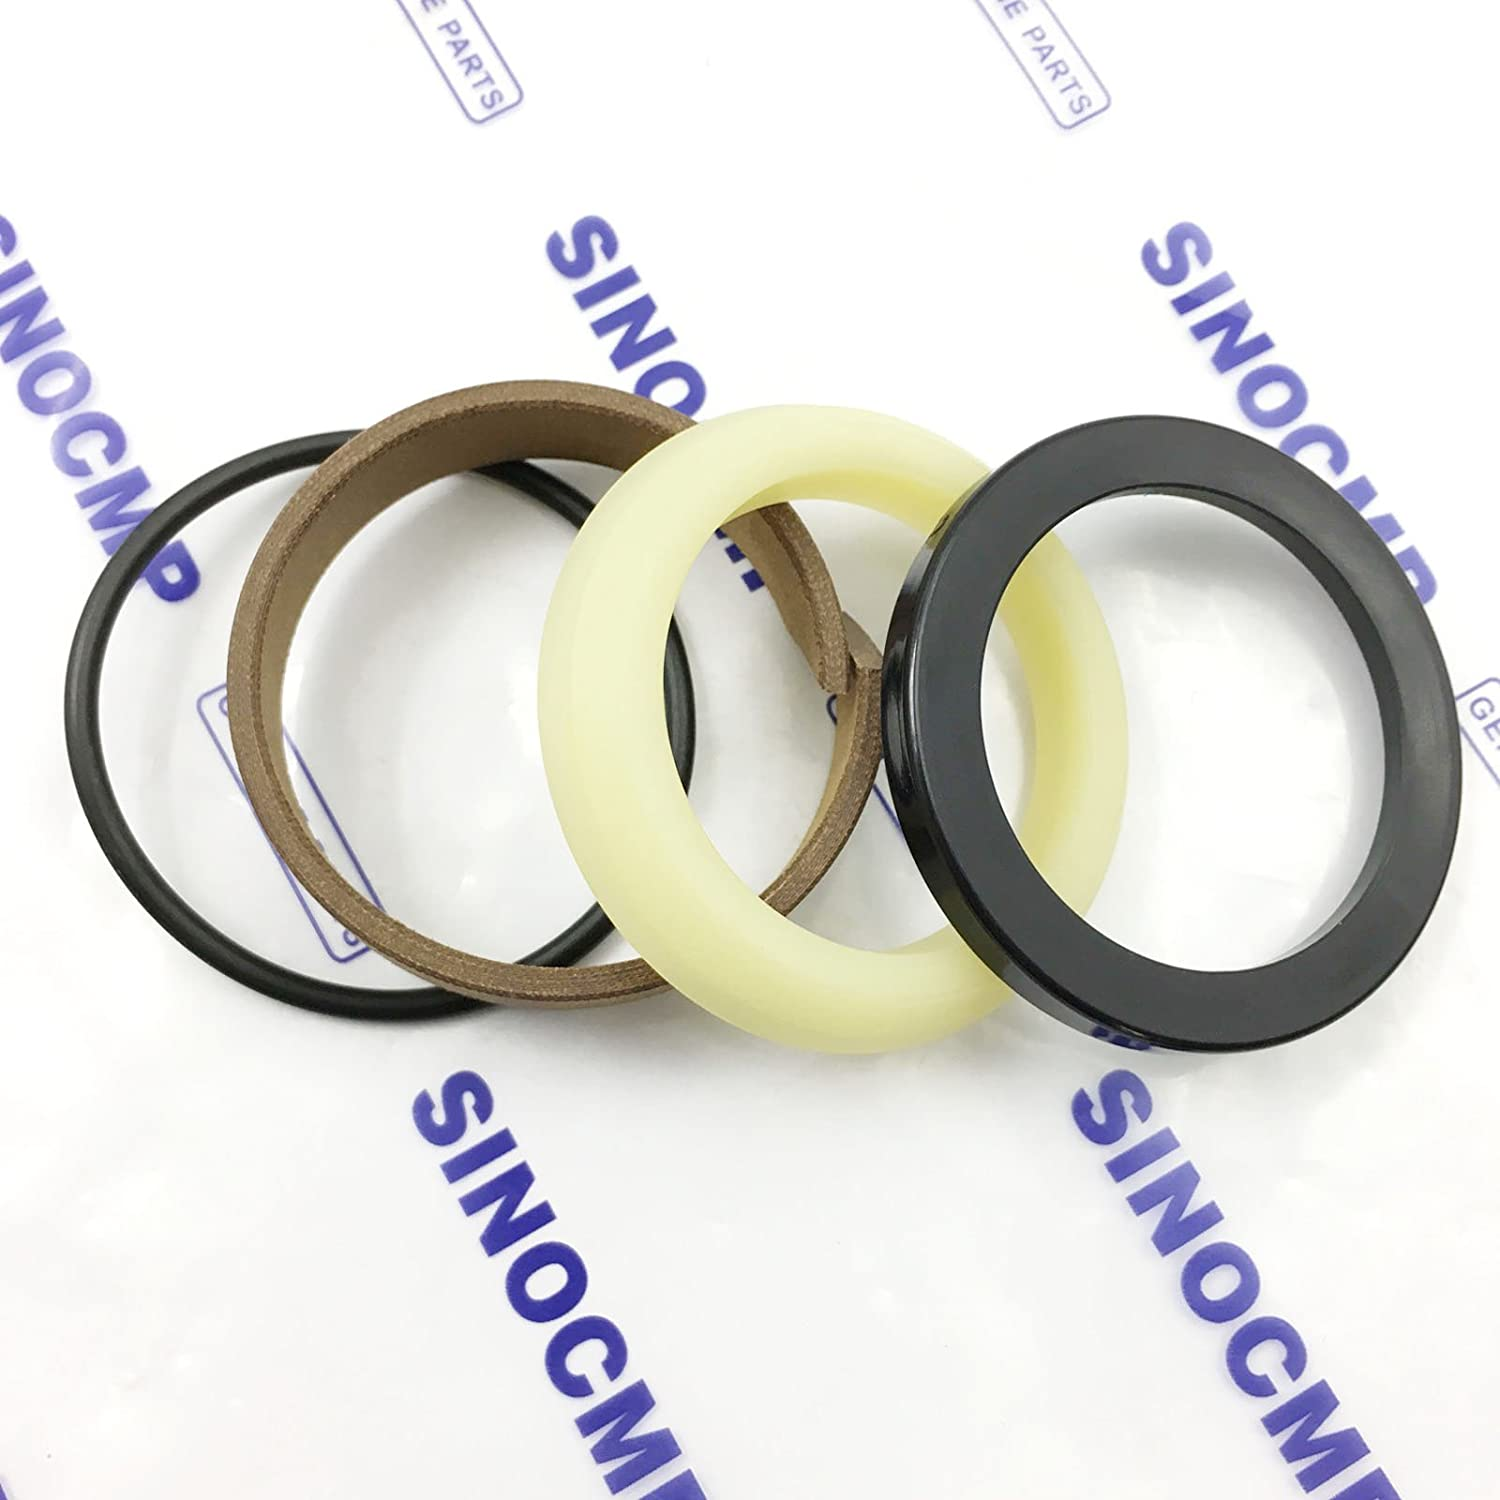 SINOCMP Repair Seal Kits for Komatsu PC200-3 PC200LC-3 Excavator Parts 3 Month Warranty 707-98-46270 Arm Hydraulic Cylinder Repair Seal Kit